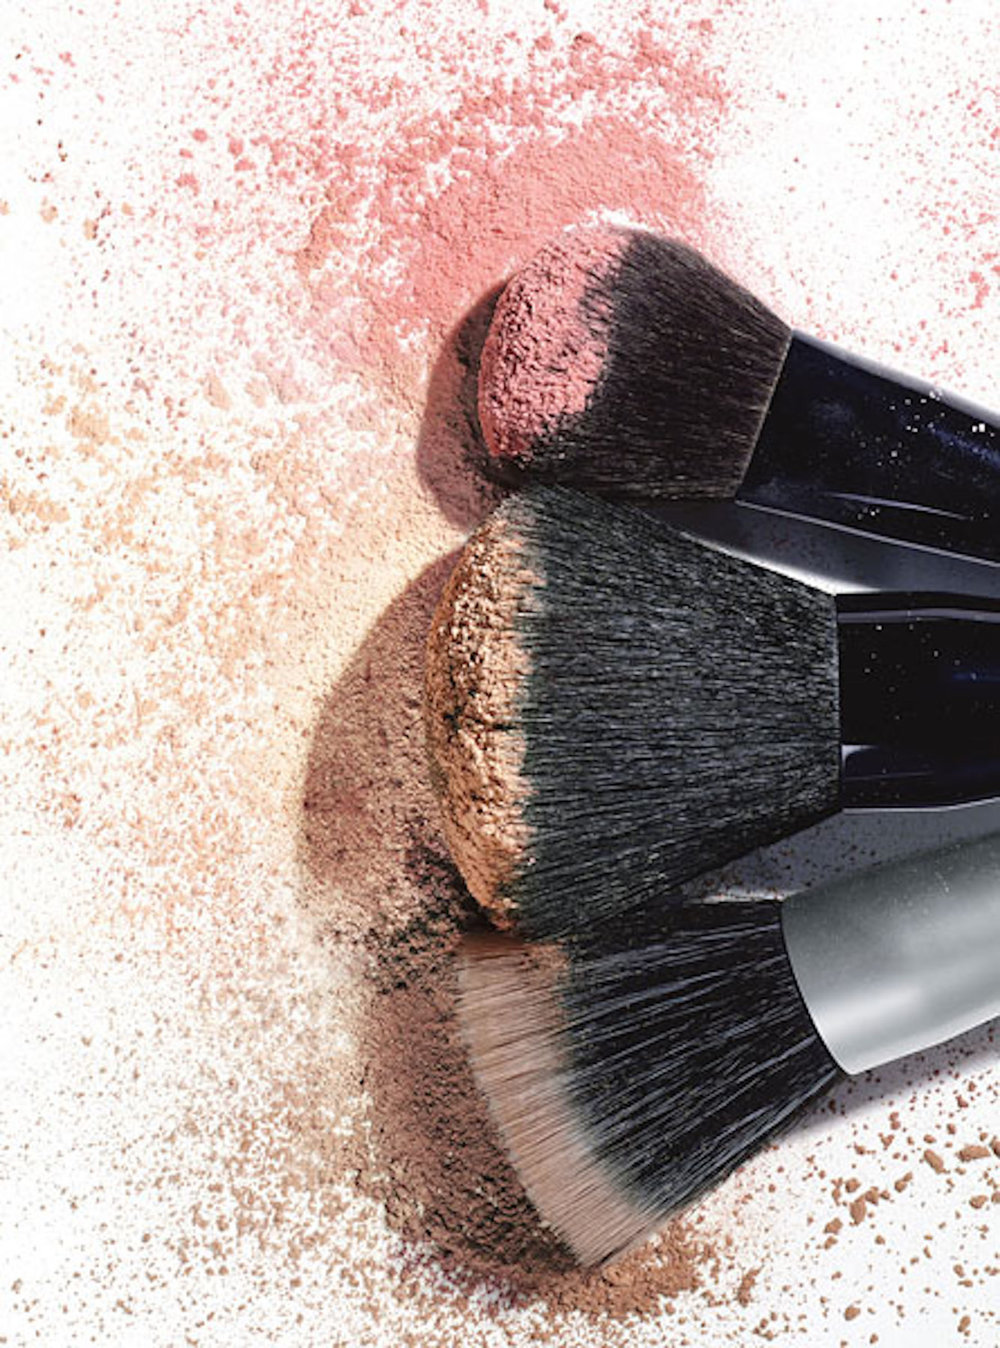 1:1 MAKEUP LESSONS - 1:1 sessions suitable for all agesIncludes face chart, step-by-step guide and product list.£50 per two hour session